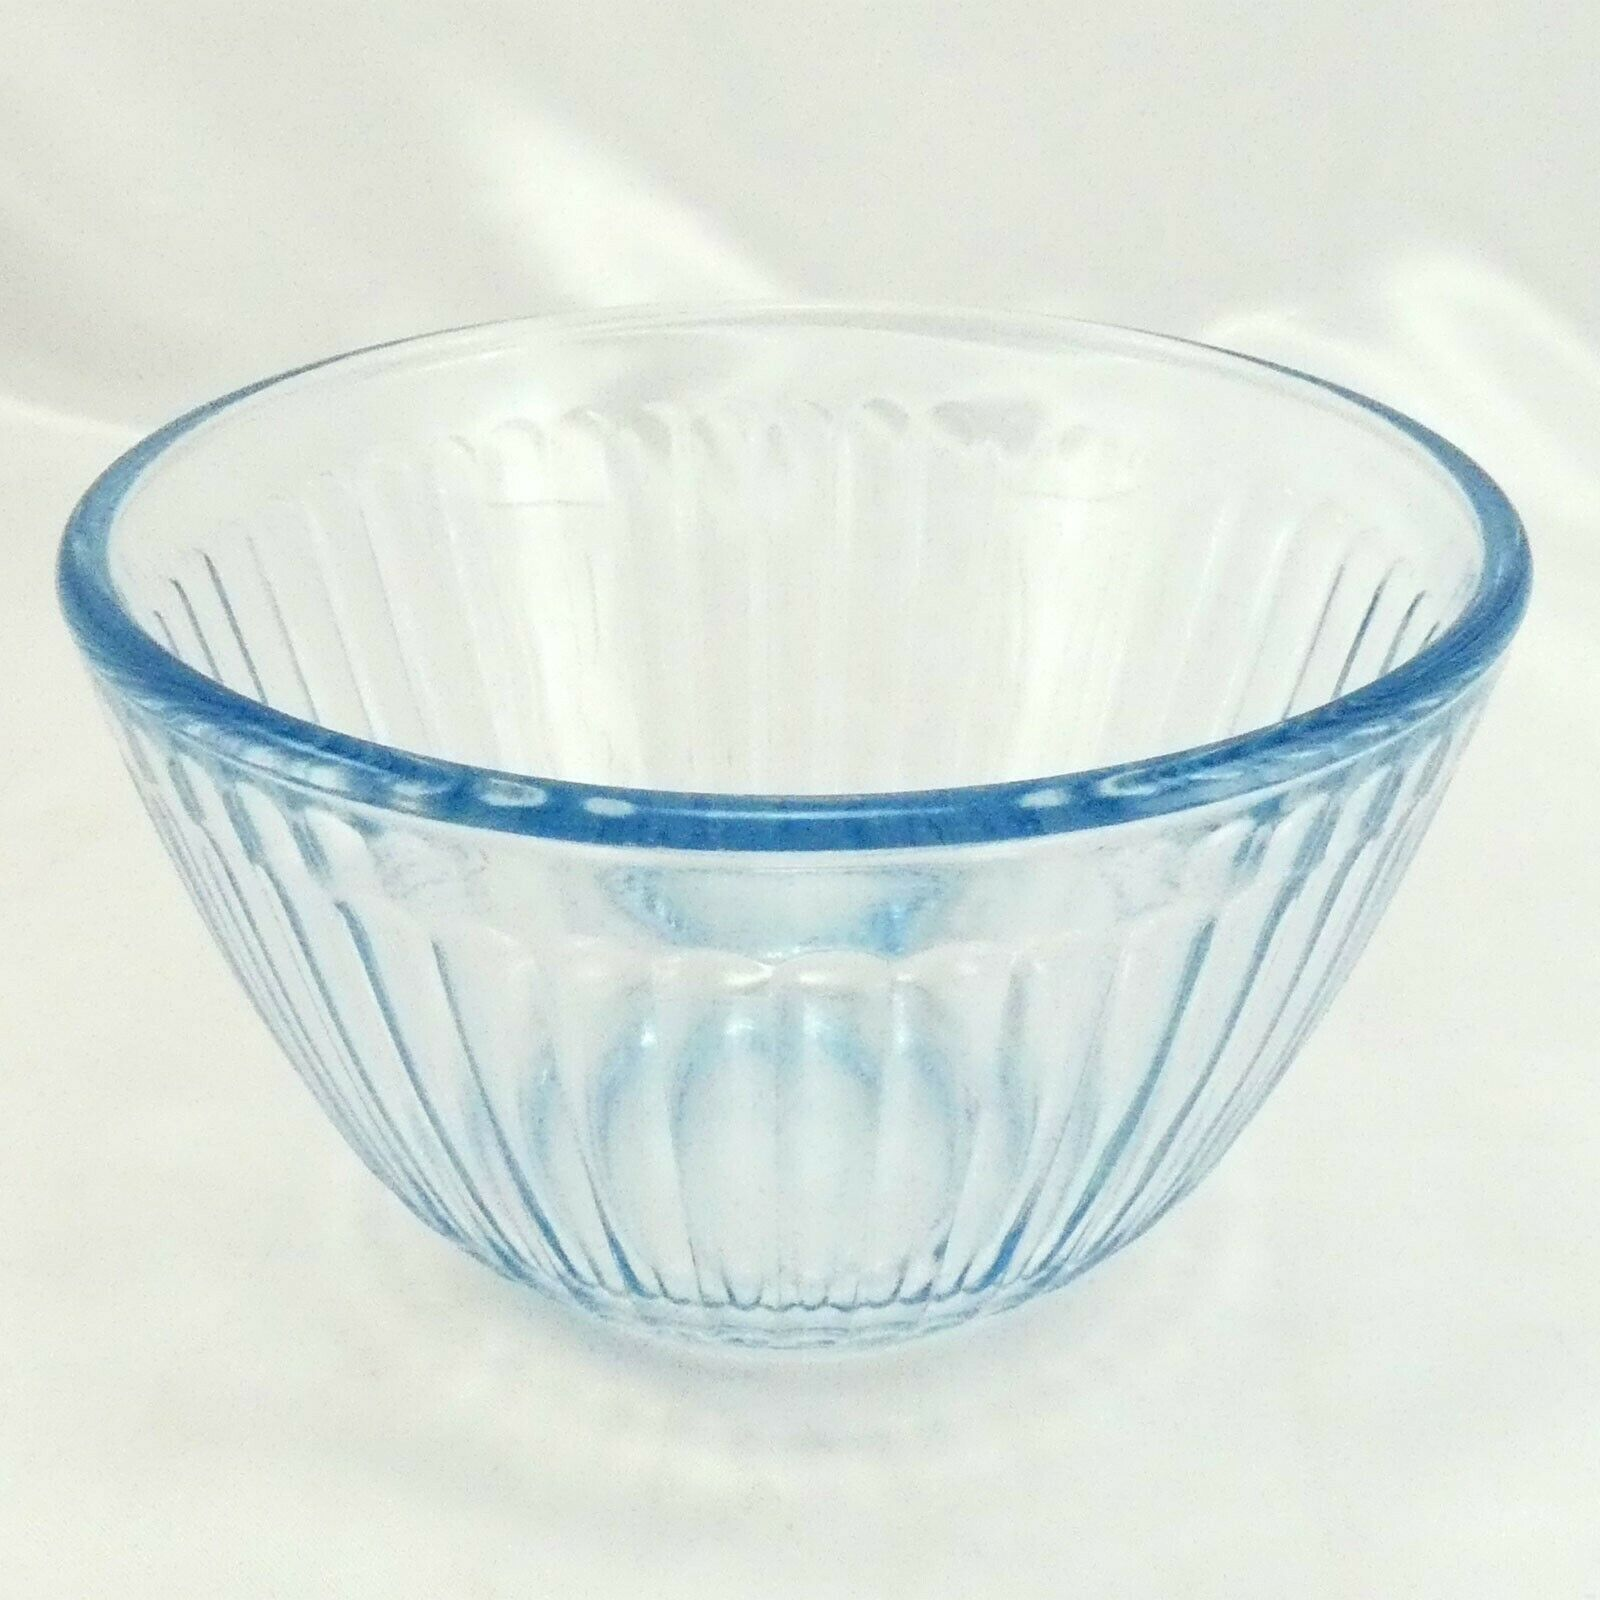 Pyrex 7401-S Ribbed Side Blue Aqua Tint Glass Serving Bowl 3 Cup